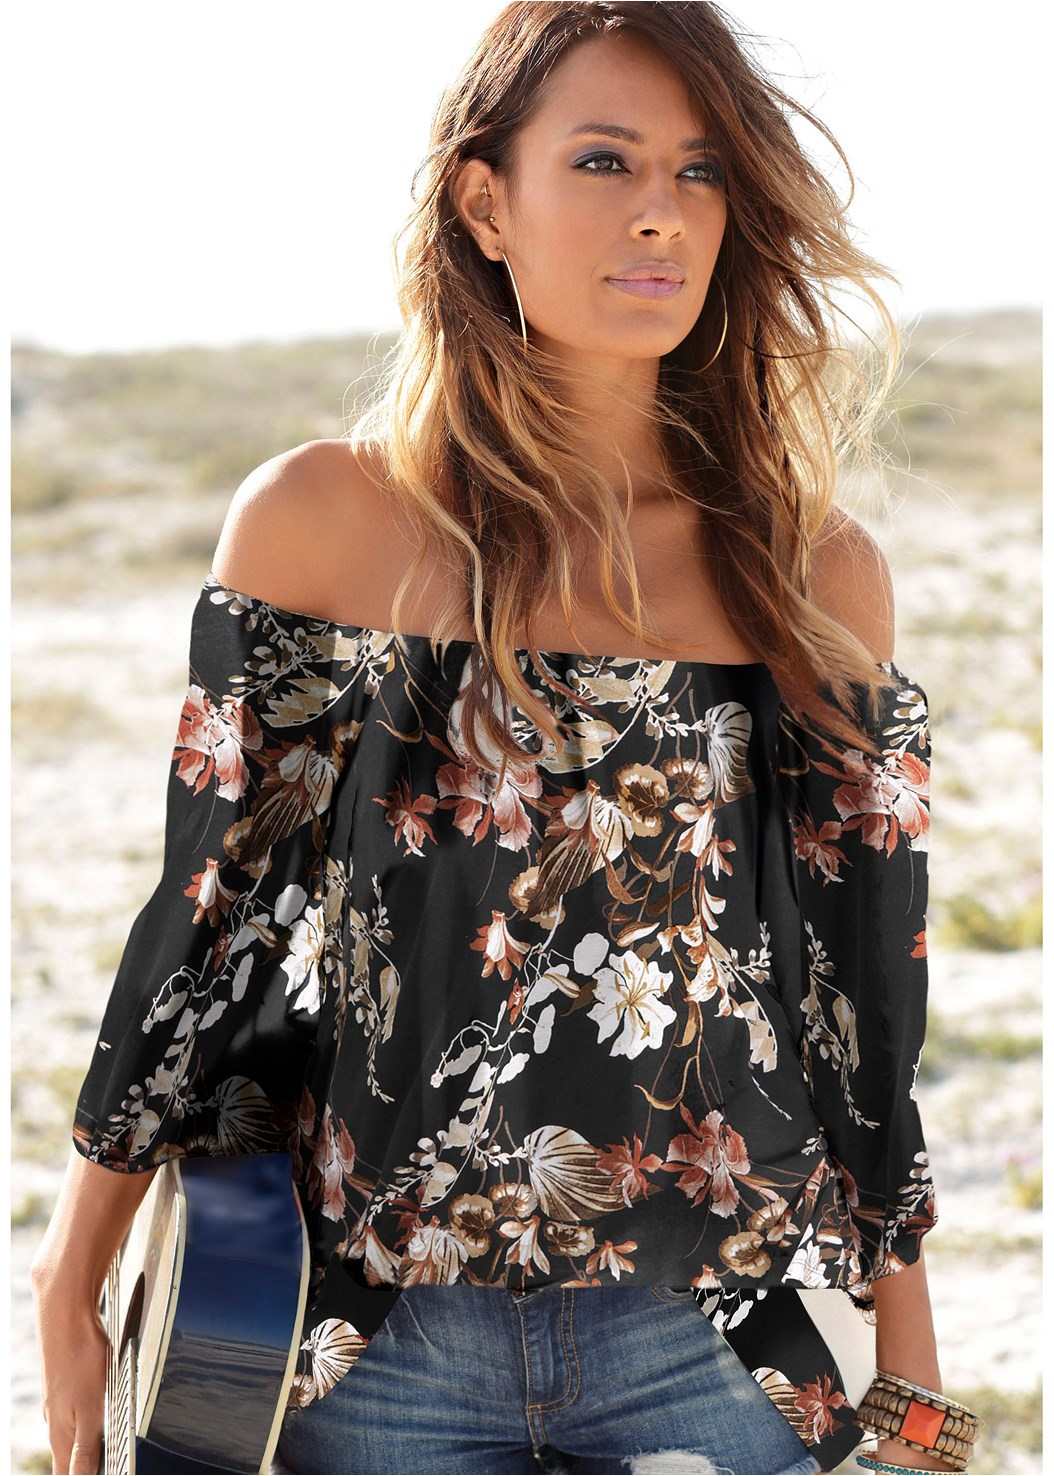 Off Shoulder Floral Top,Ripped Capri Jeans,Strapless Bra,Double Strap Cork Wedge,Beaded Dreamcatcher Earring